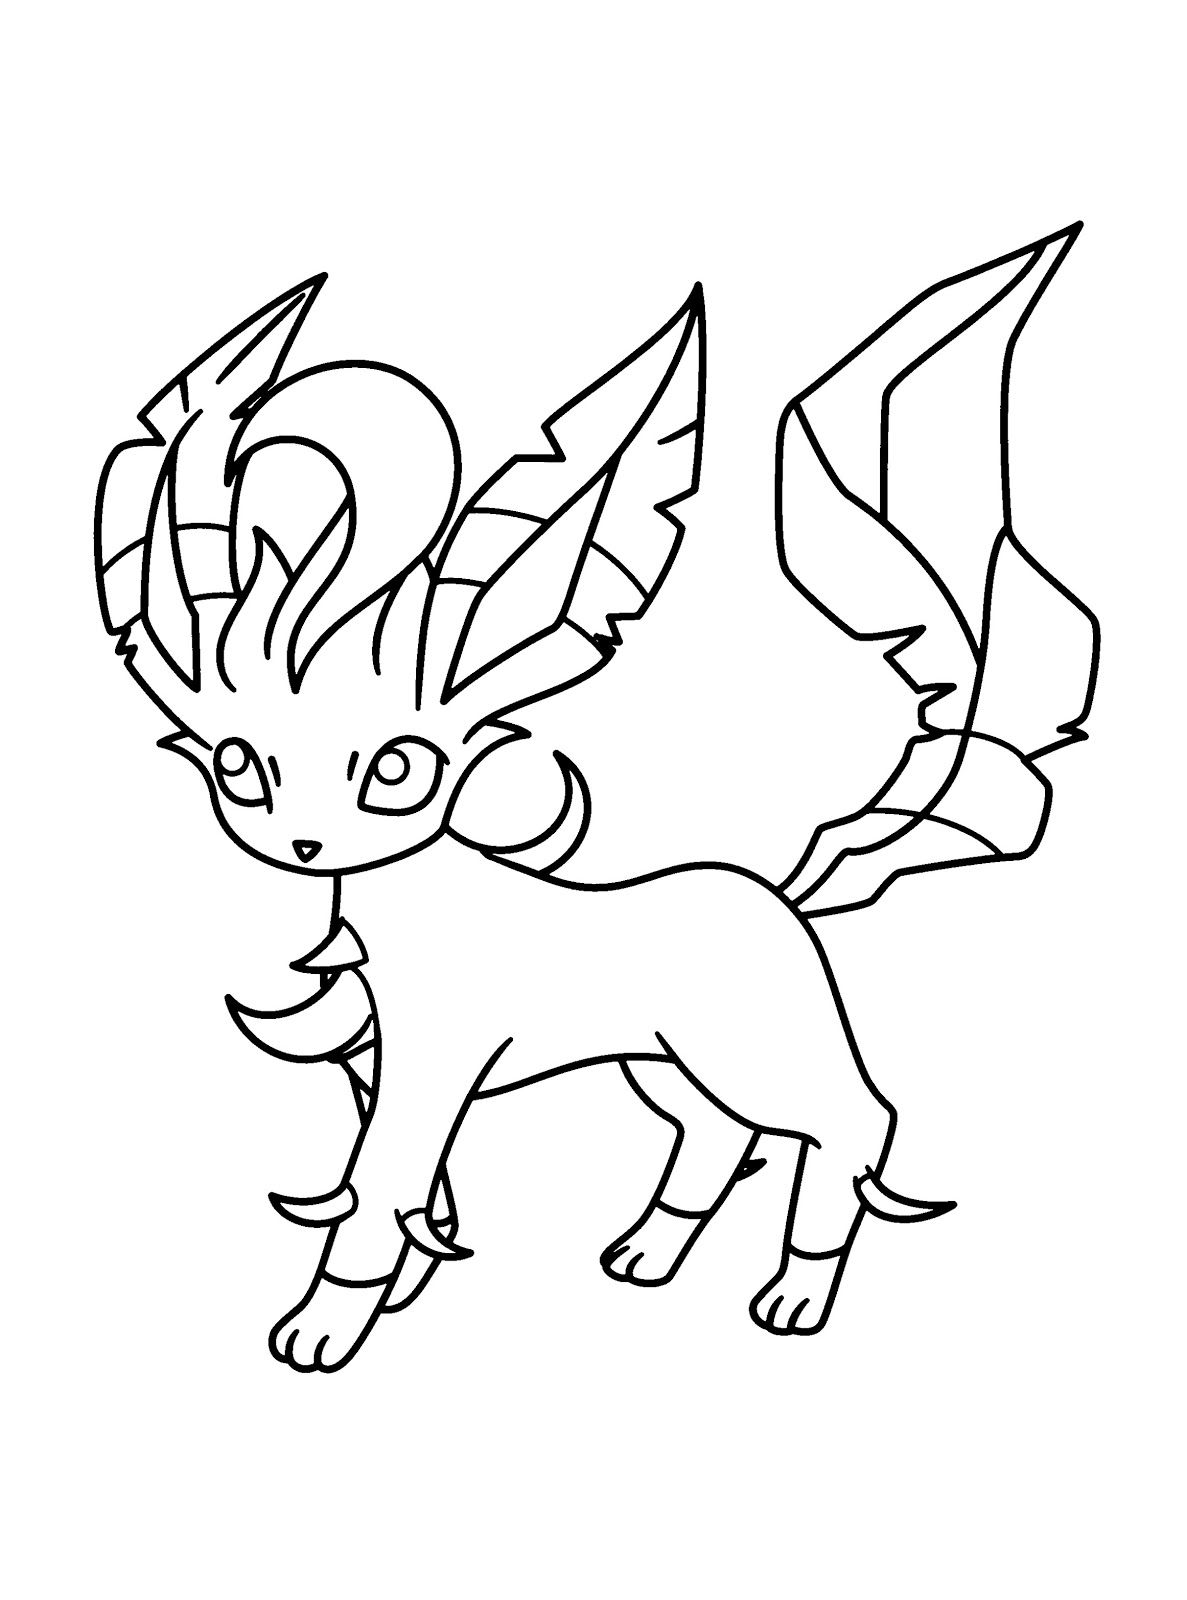 Pokemon Leafeon Coloring Pages Pokemon Coloring Pages Pokemon